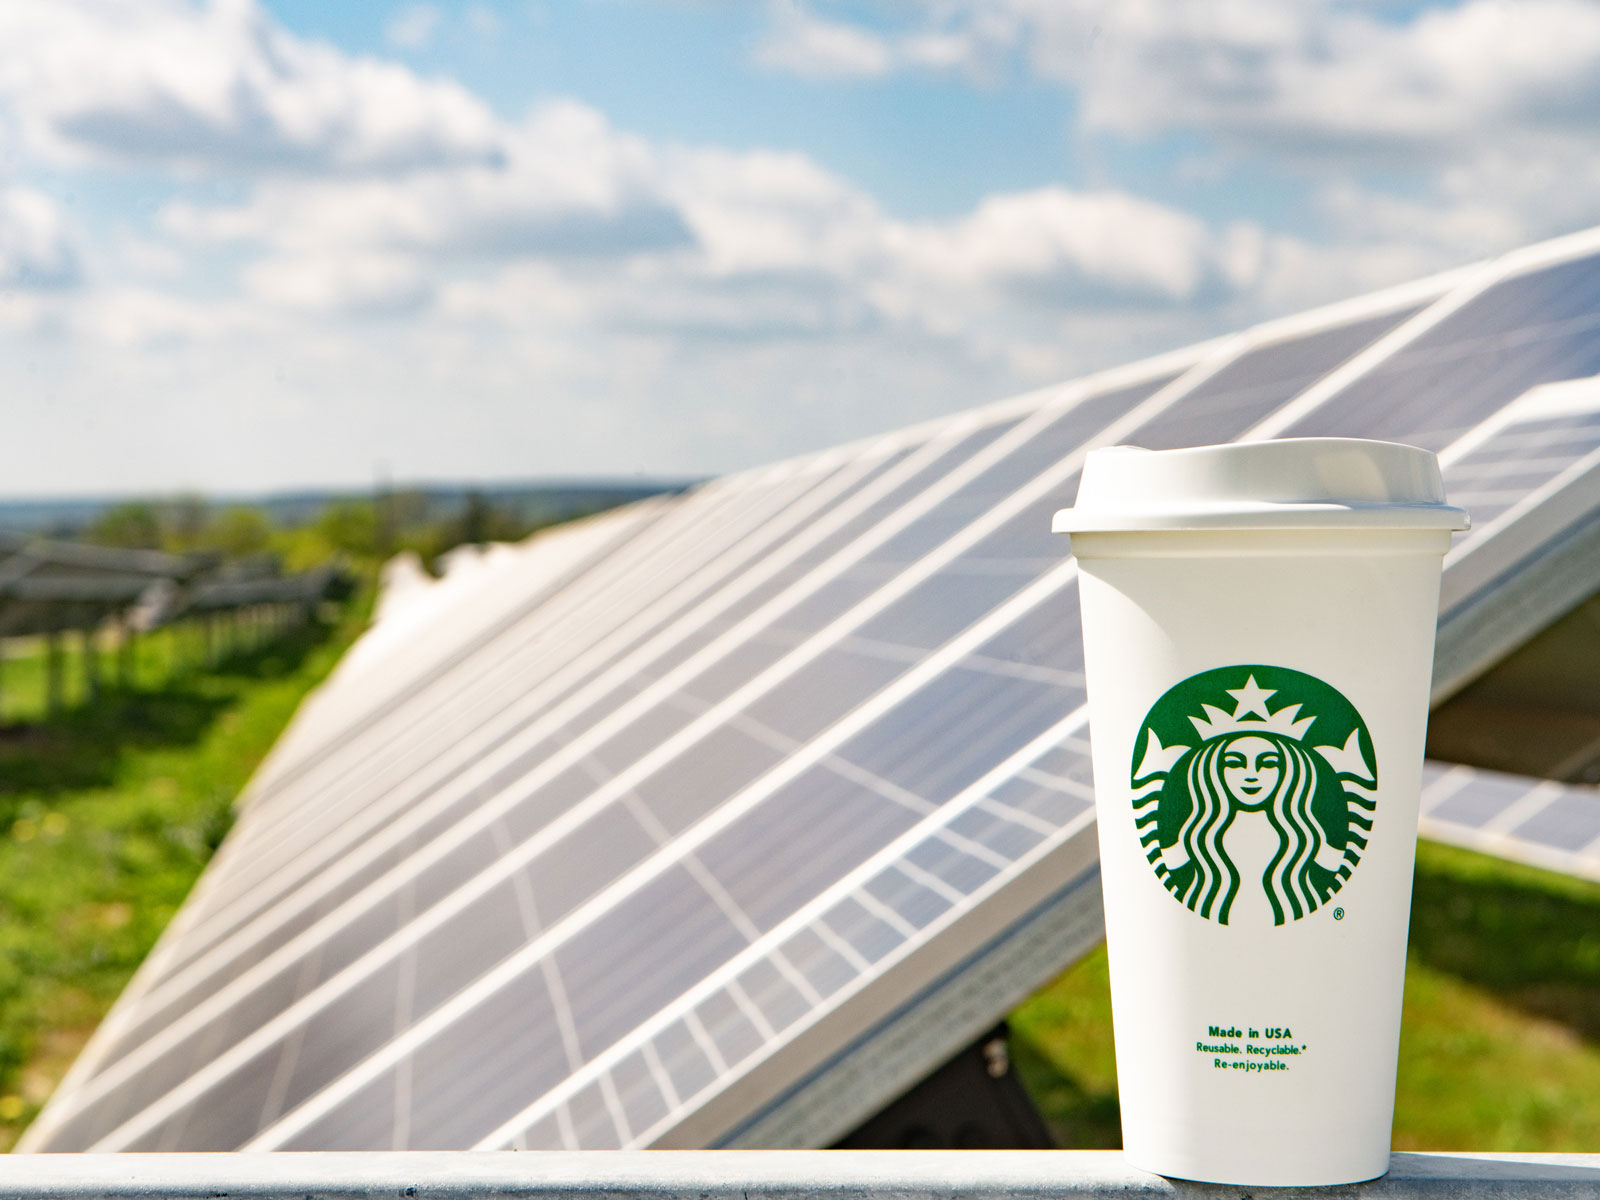 Starbucks Invests in Solar Power for 360 Texas Locations solar plan